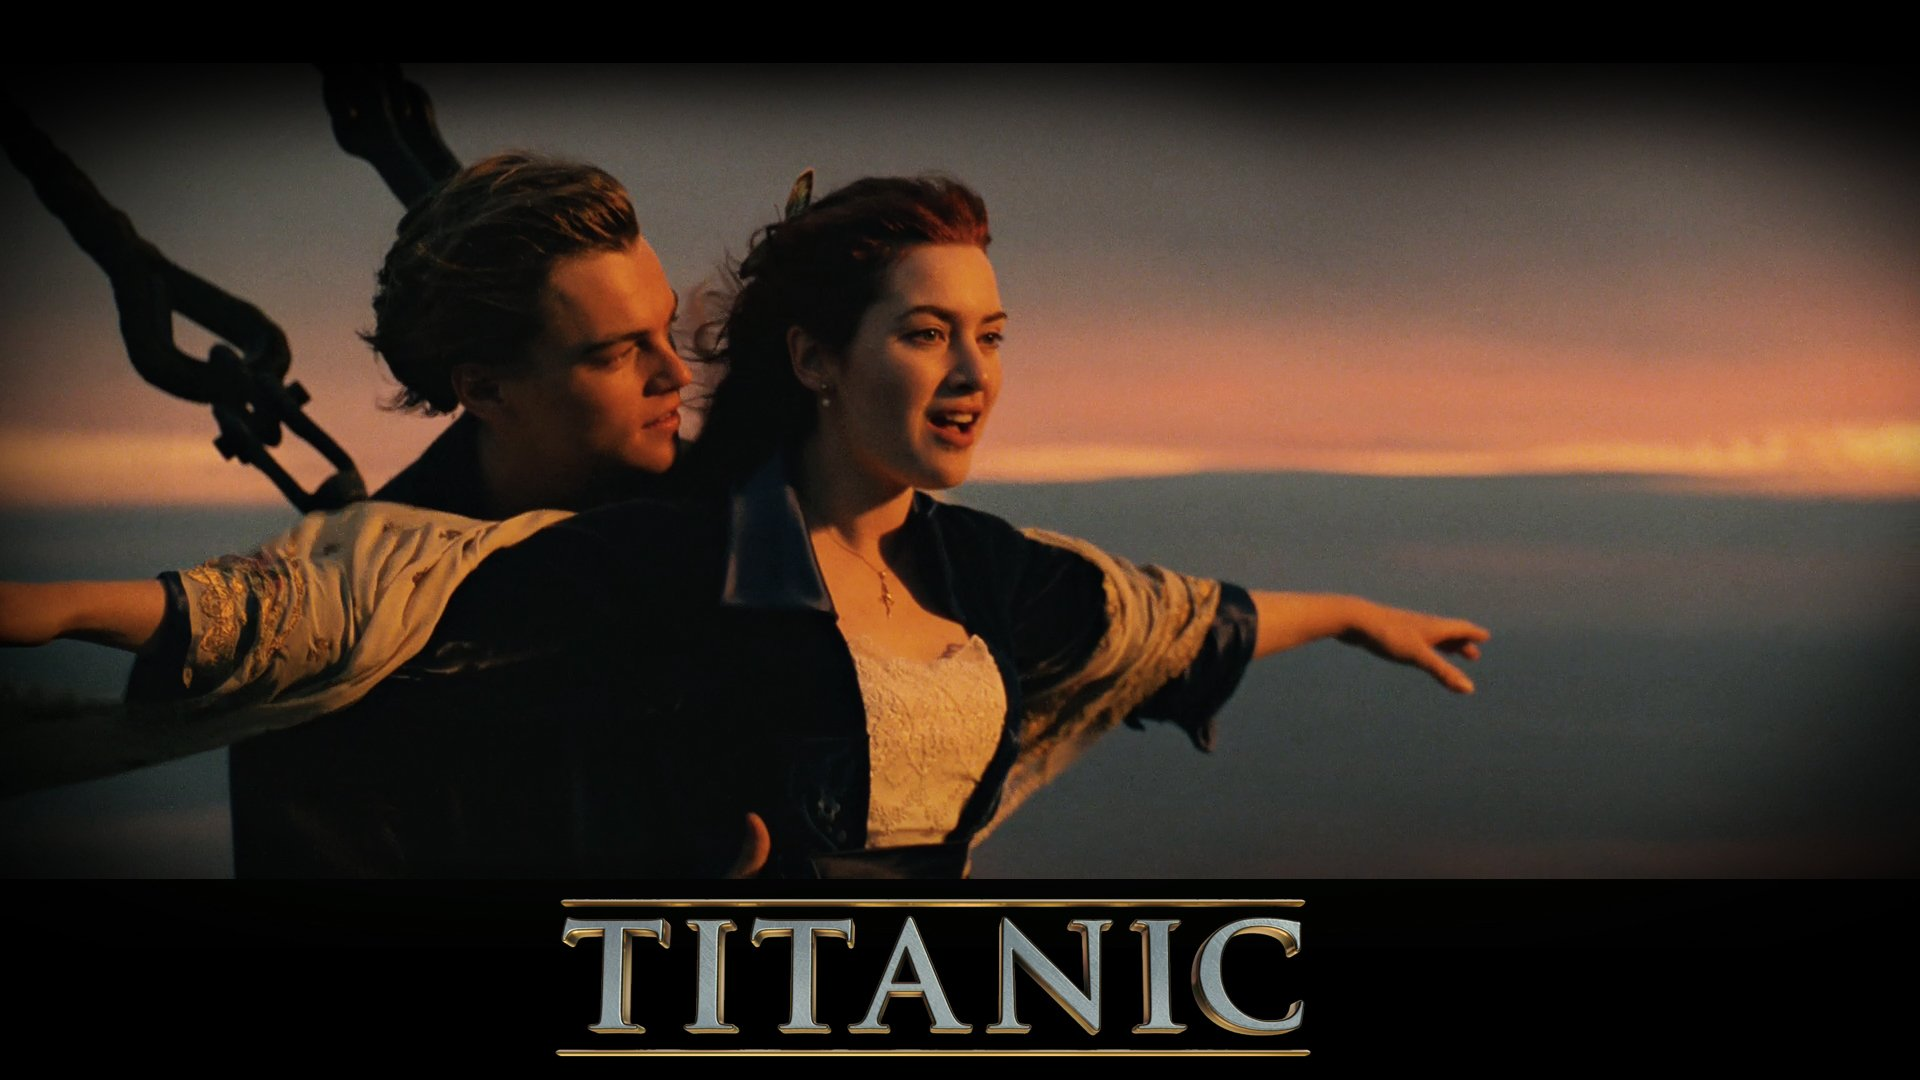 titanic full hd wallpaper and background image | 1920x1080 | id:349578